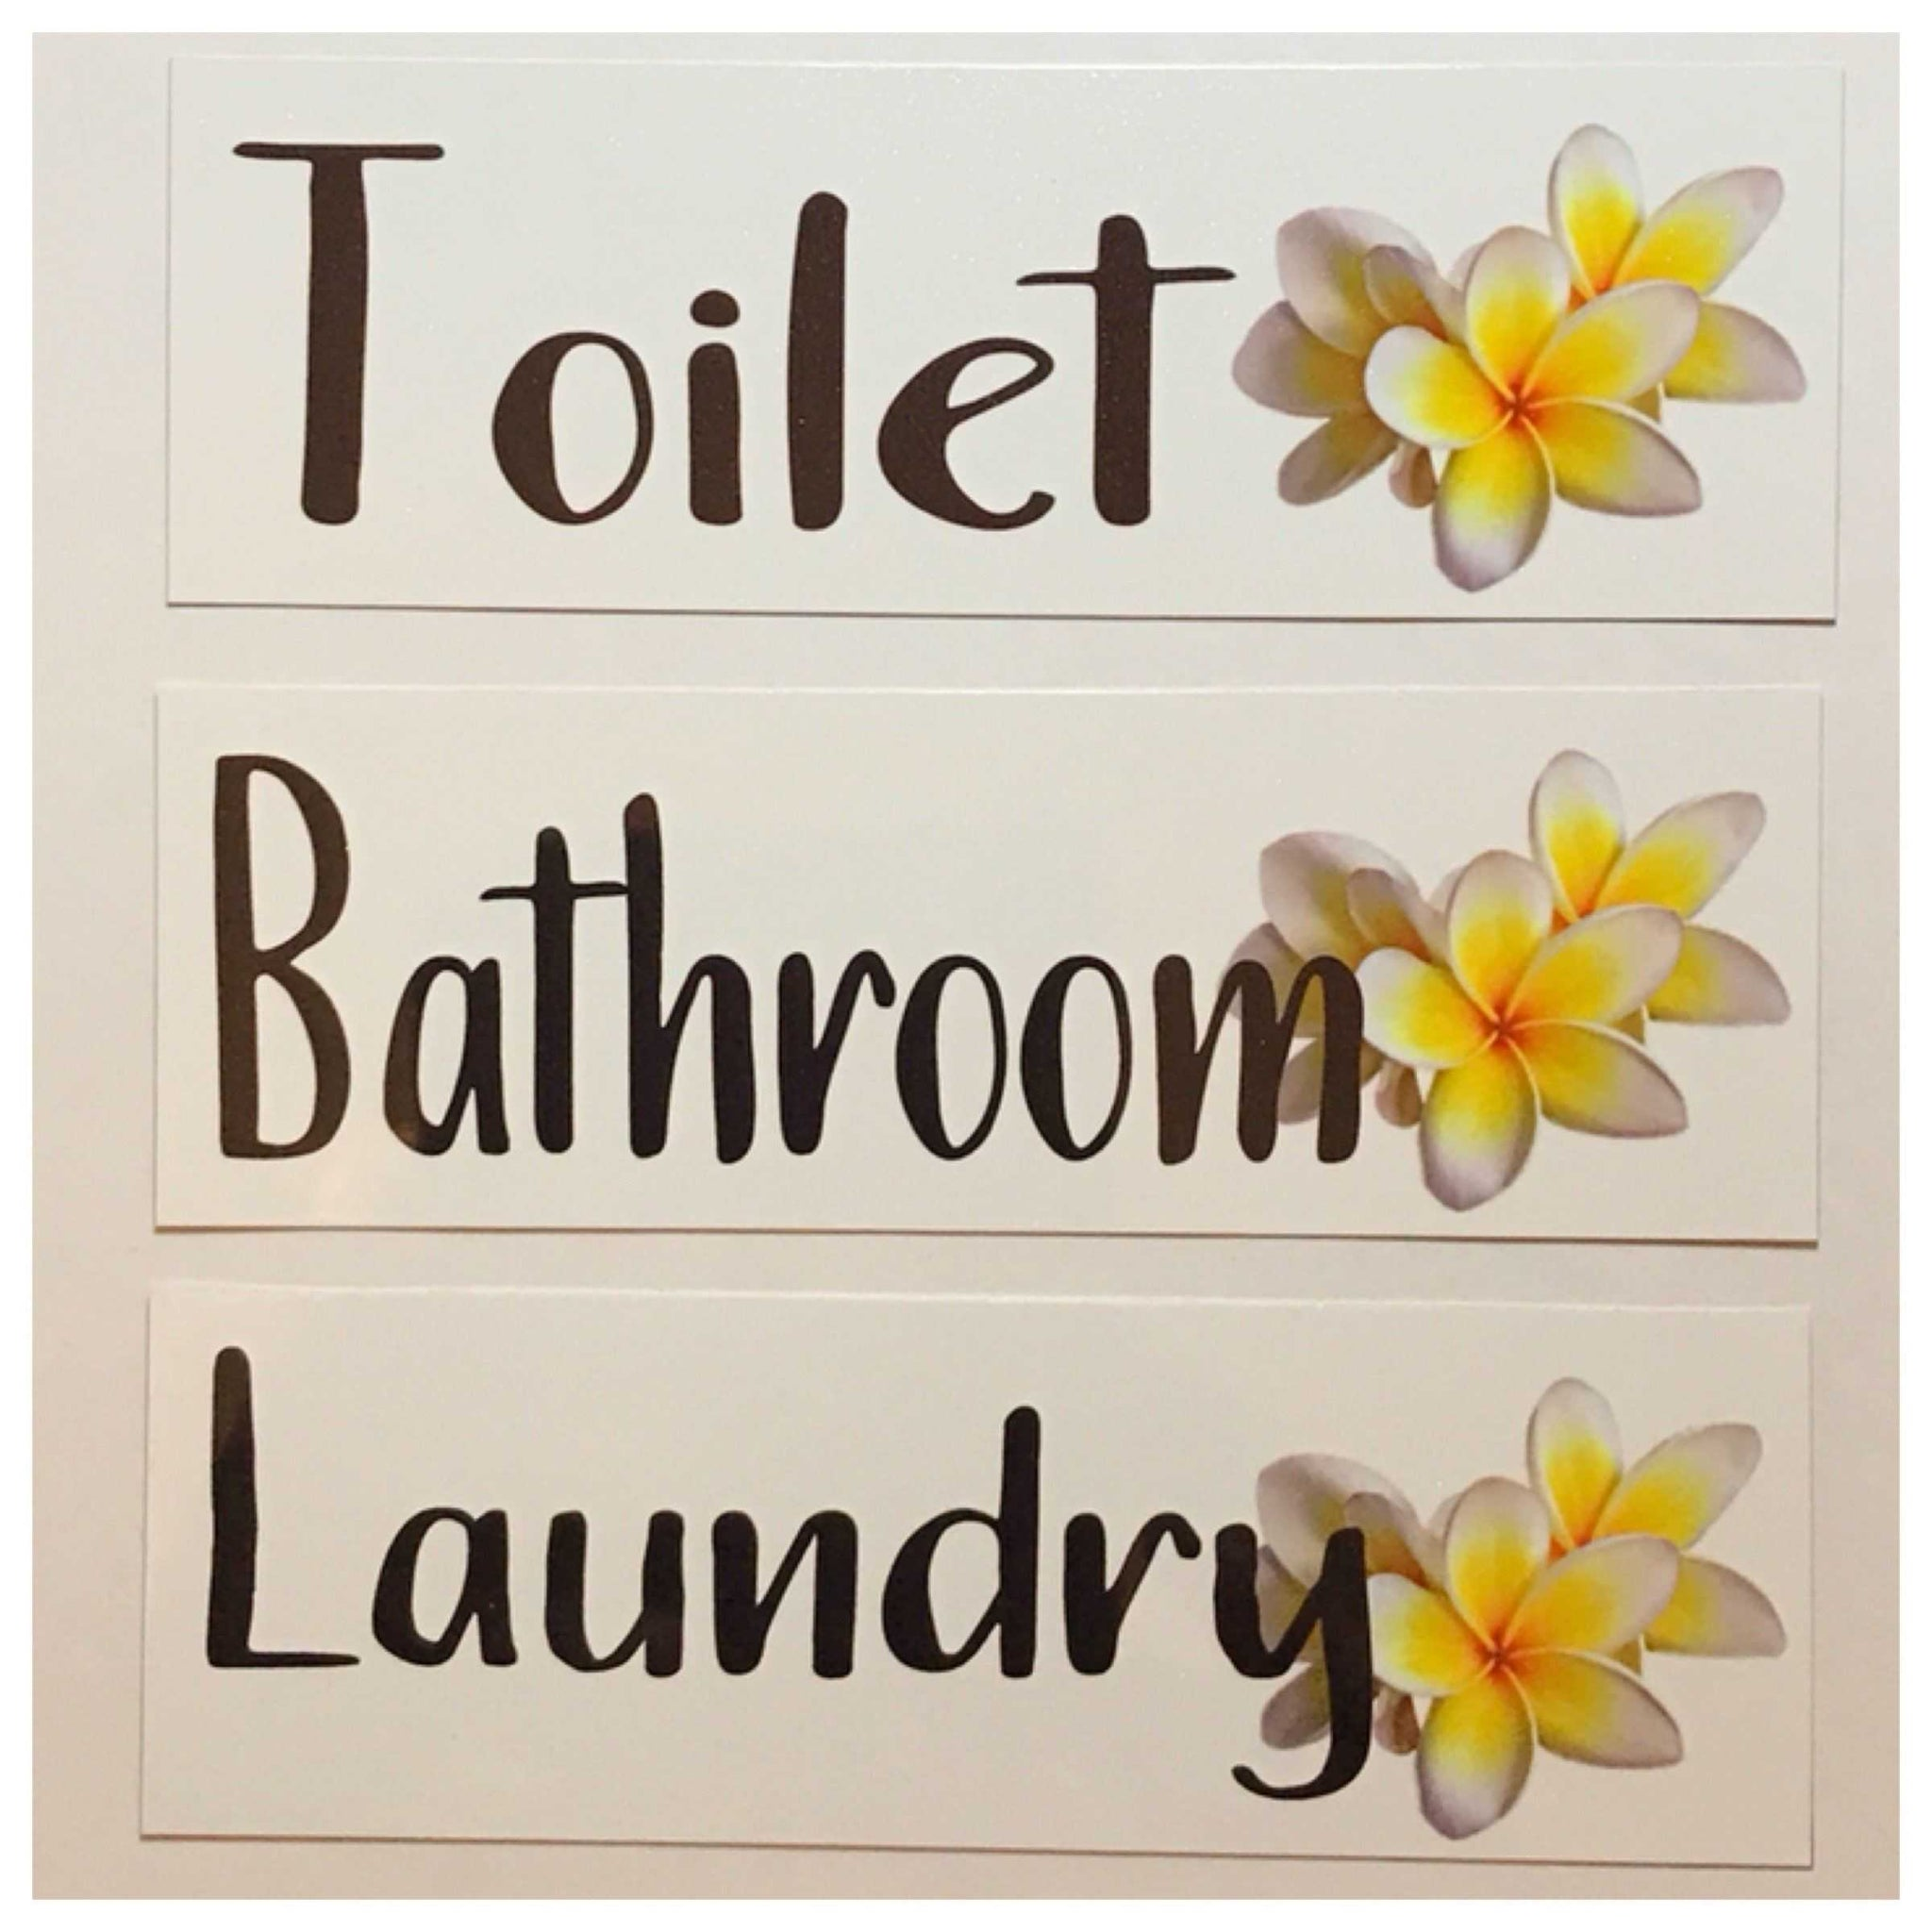 Frangipani Toilet Laundry Bathroom Sign - The Renmy Store